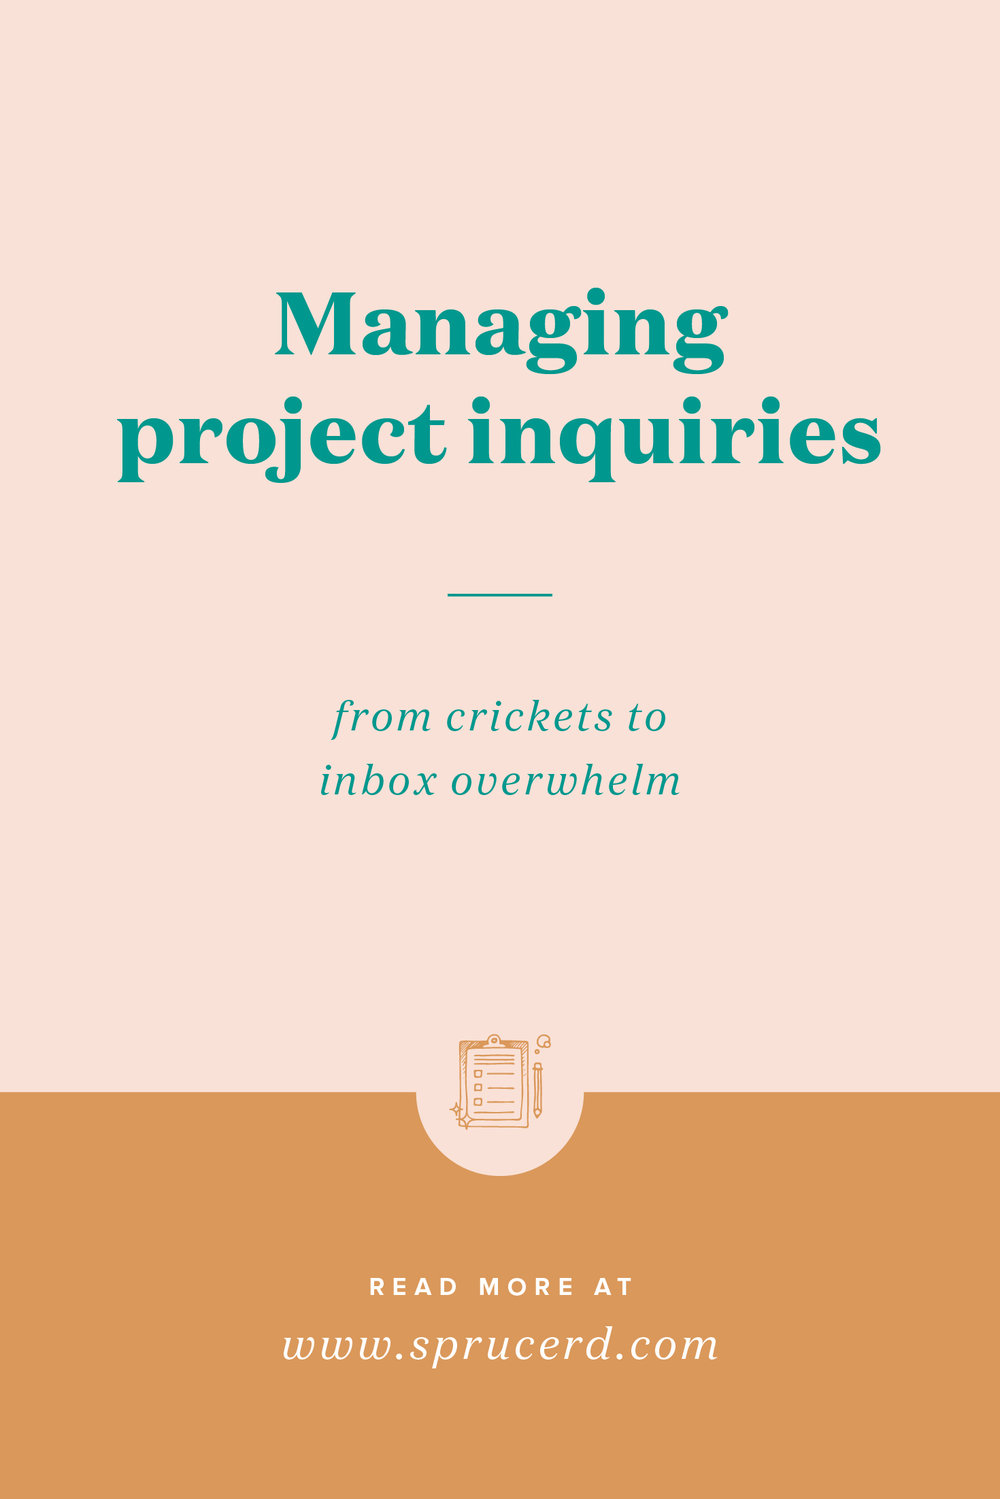 """Managing project inquiries 